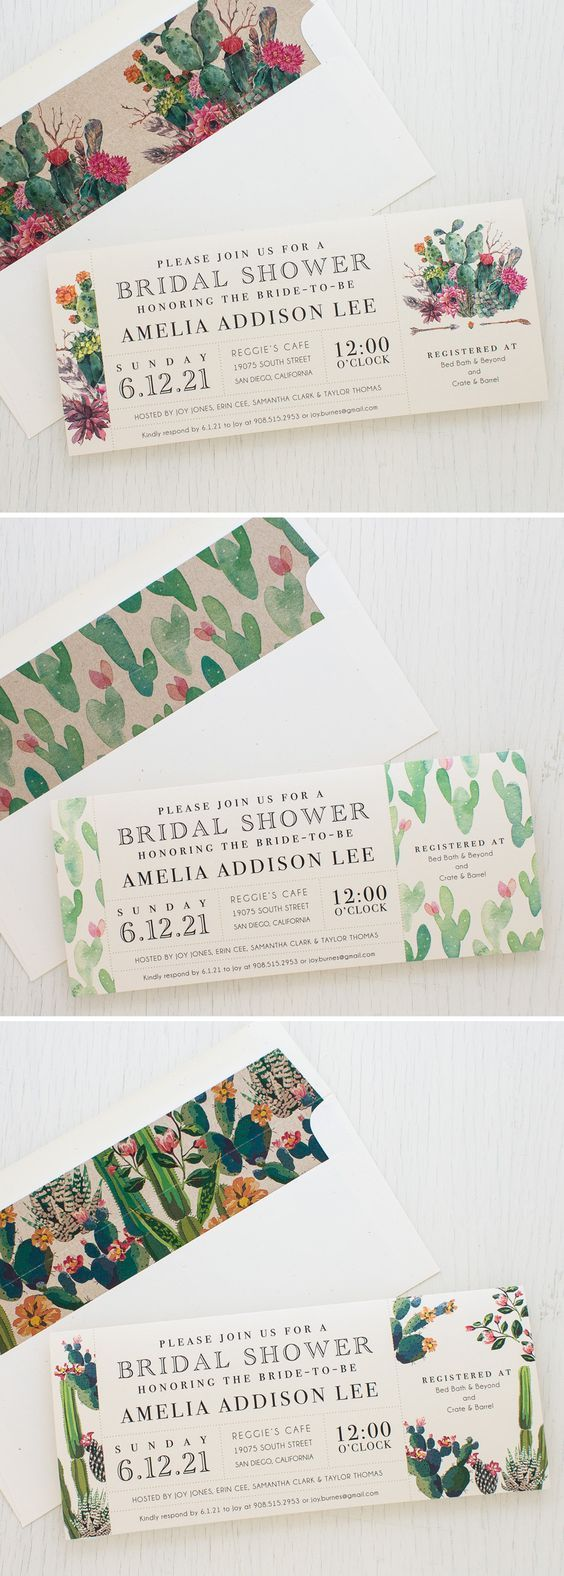 bridal shower invitations vector free%0A Set the tone of your bridal shower with Desert Blooms  Beacon Lane u    s  customizable vintage cactus